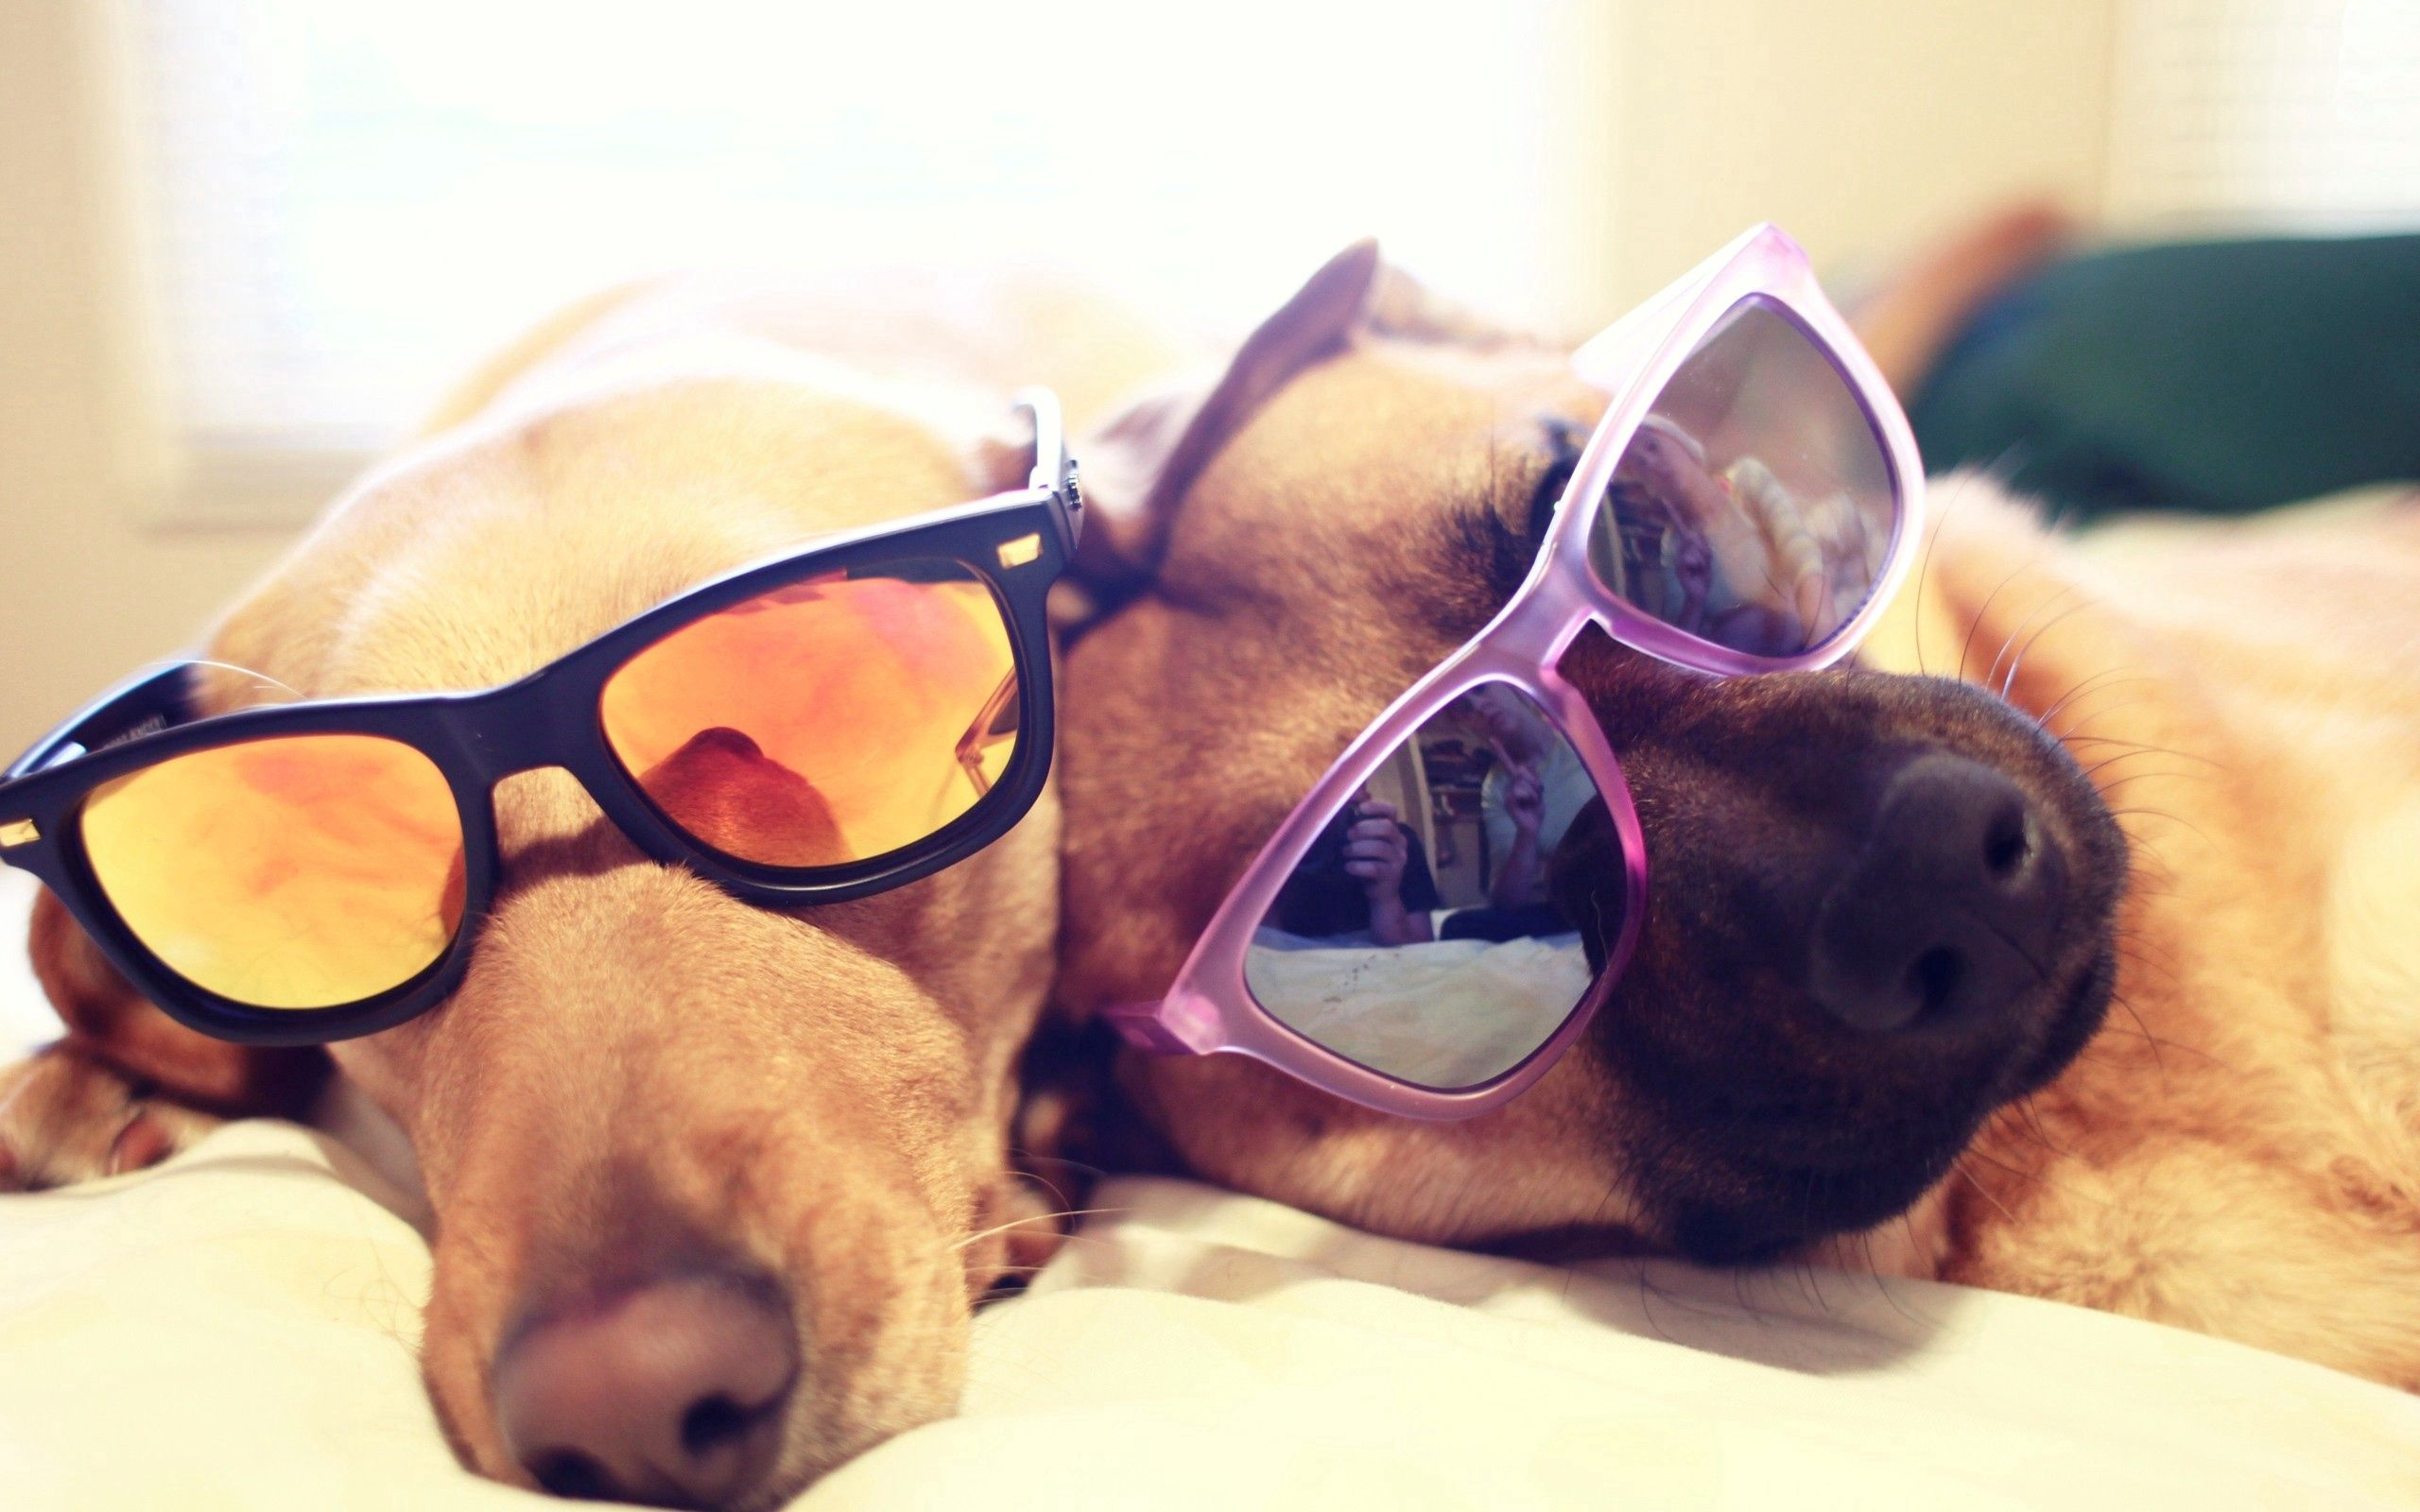 56746 download wallpaper Animals, Dogs, Couple, Pair, Glasses, Spectacles, To Lie Down, Lie screensavers and pictures for free